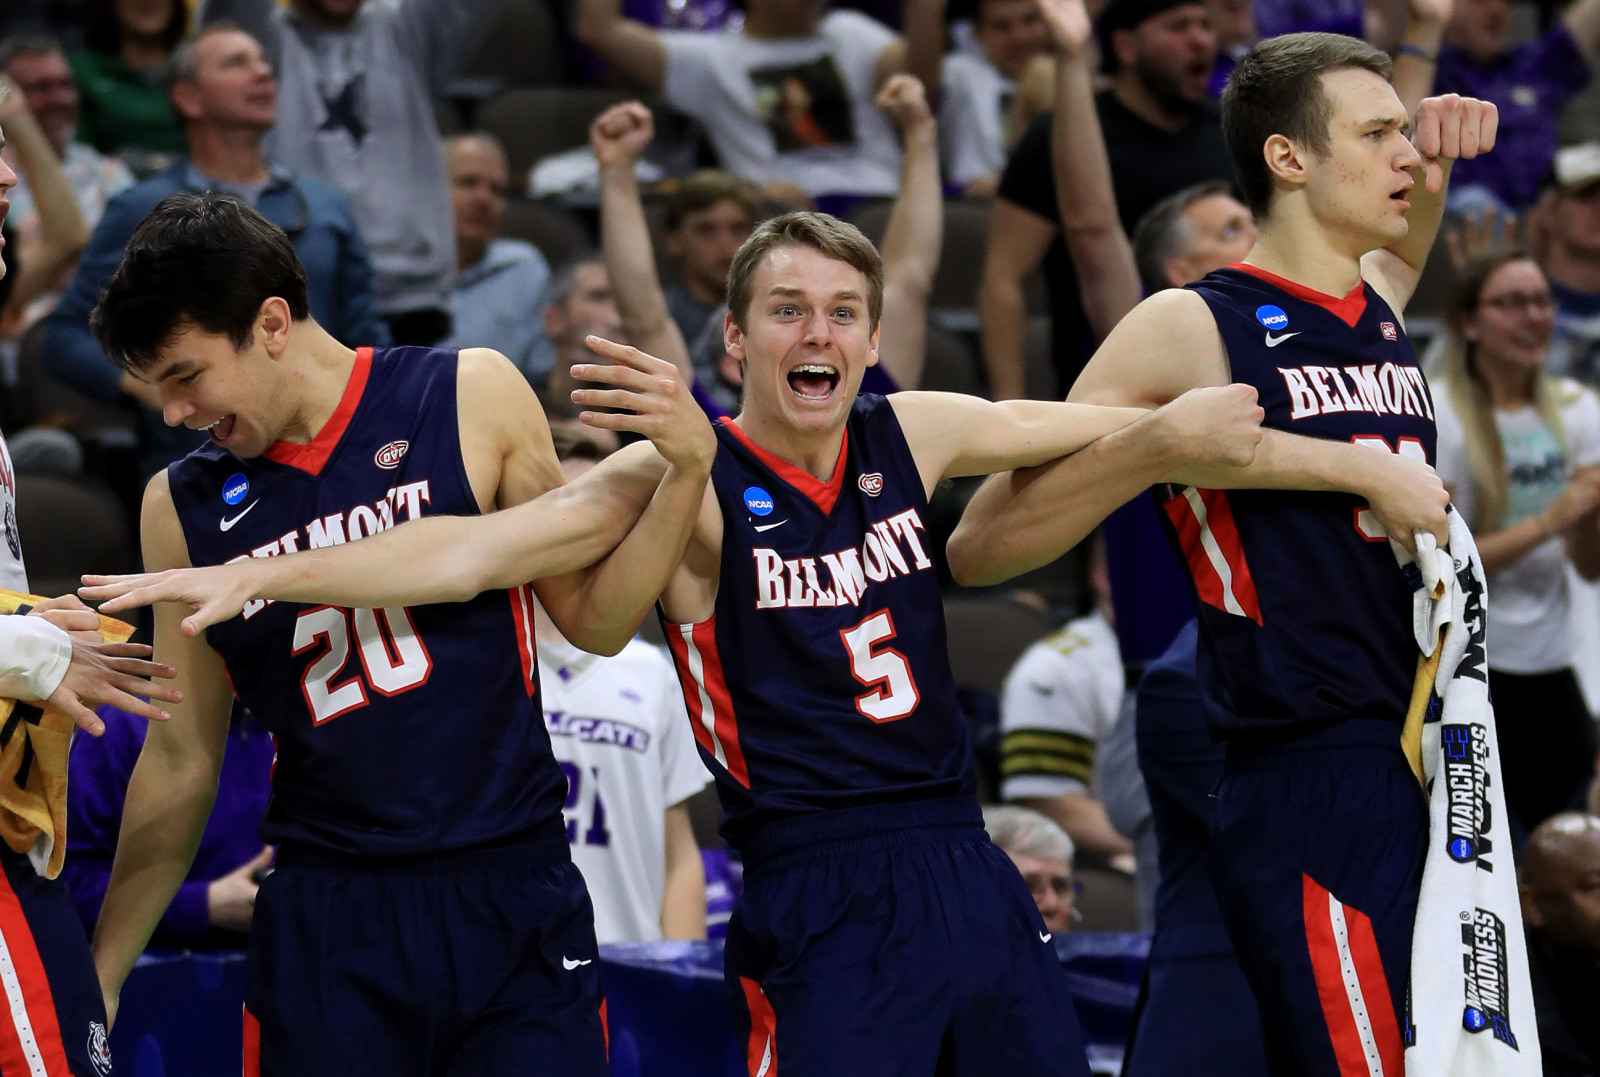 Mid-major Basketball: Early 2020-21 preview for Belmont Basketball